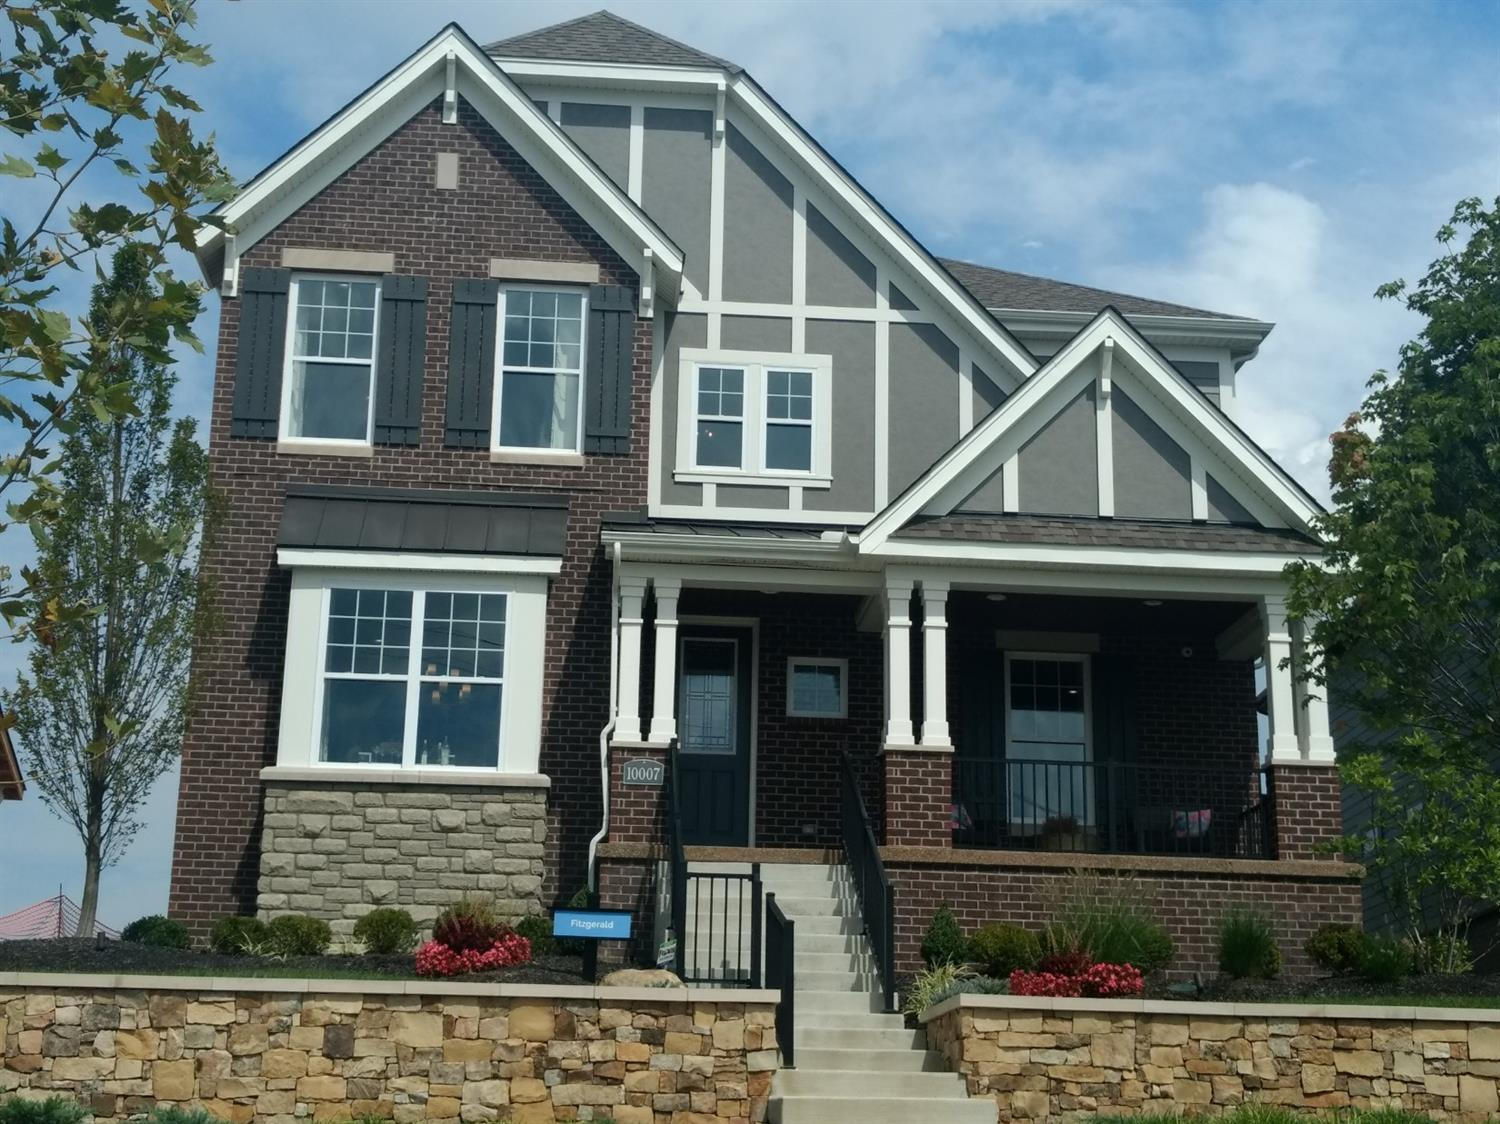 10007 Cornell Aly 103 Blue Ash OH